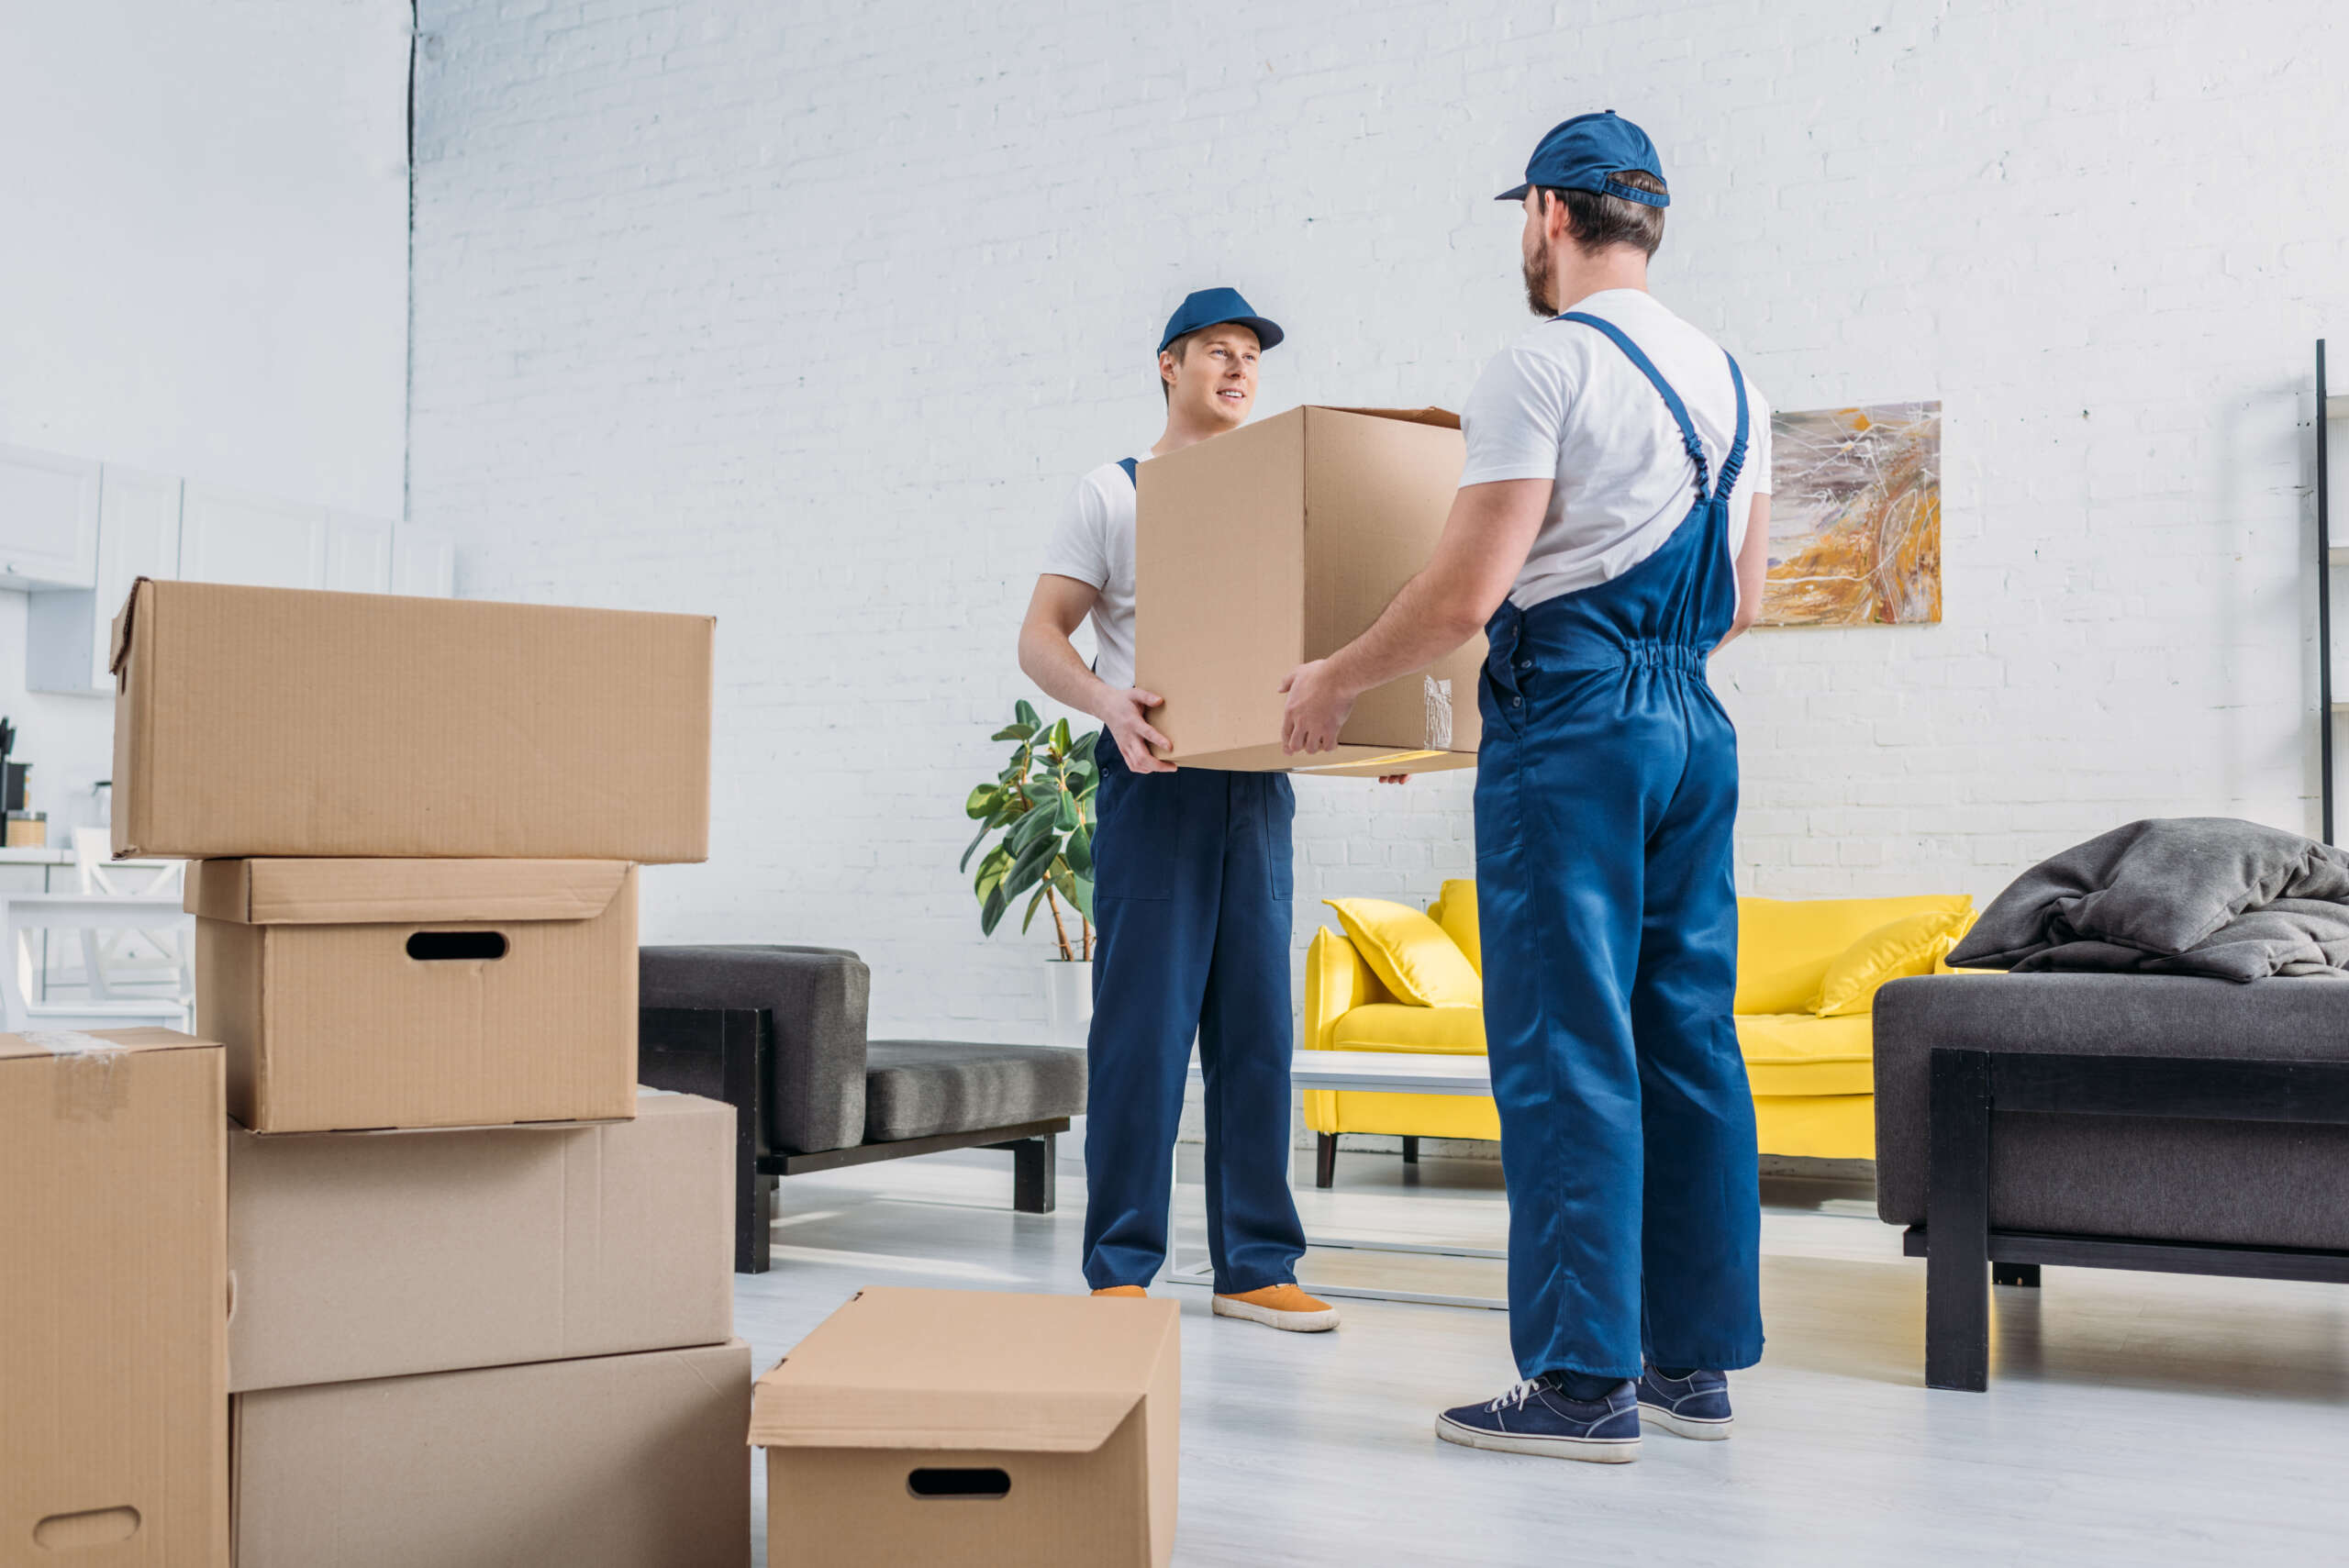 two movers in uniform transporting cardboard box in living room